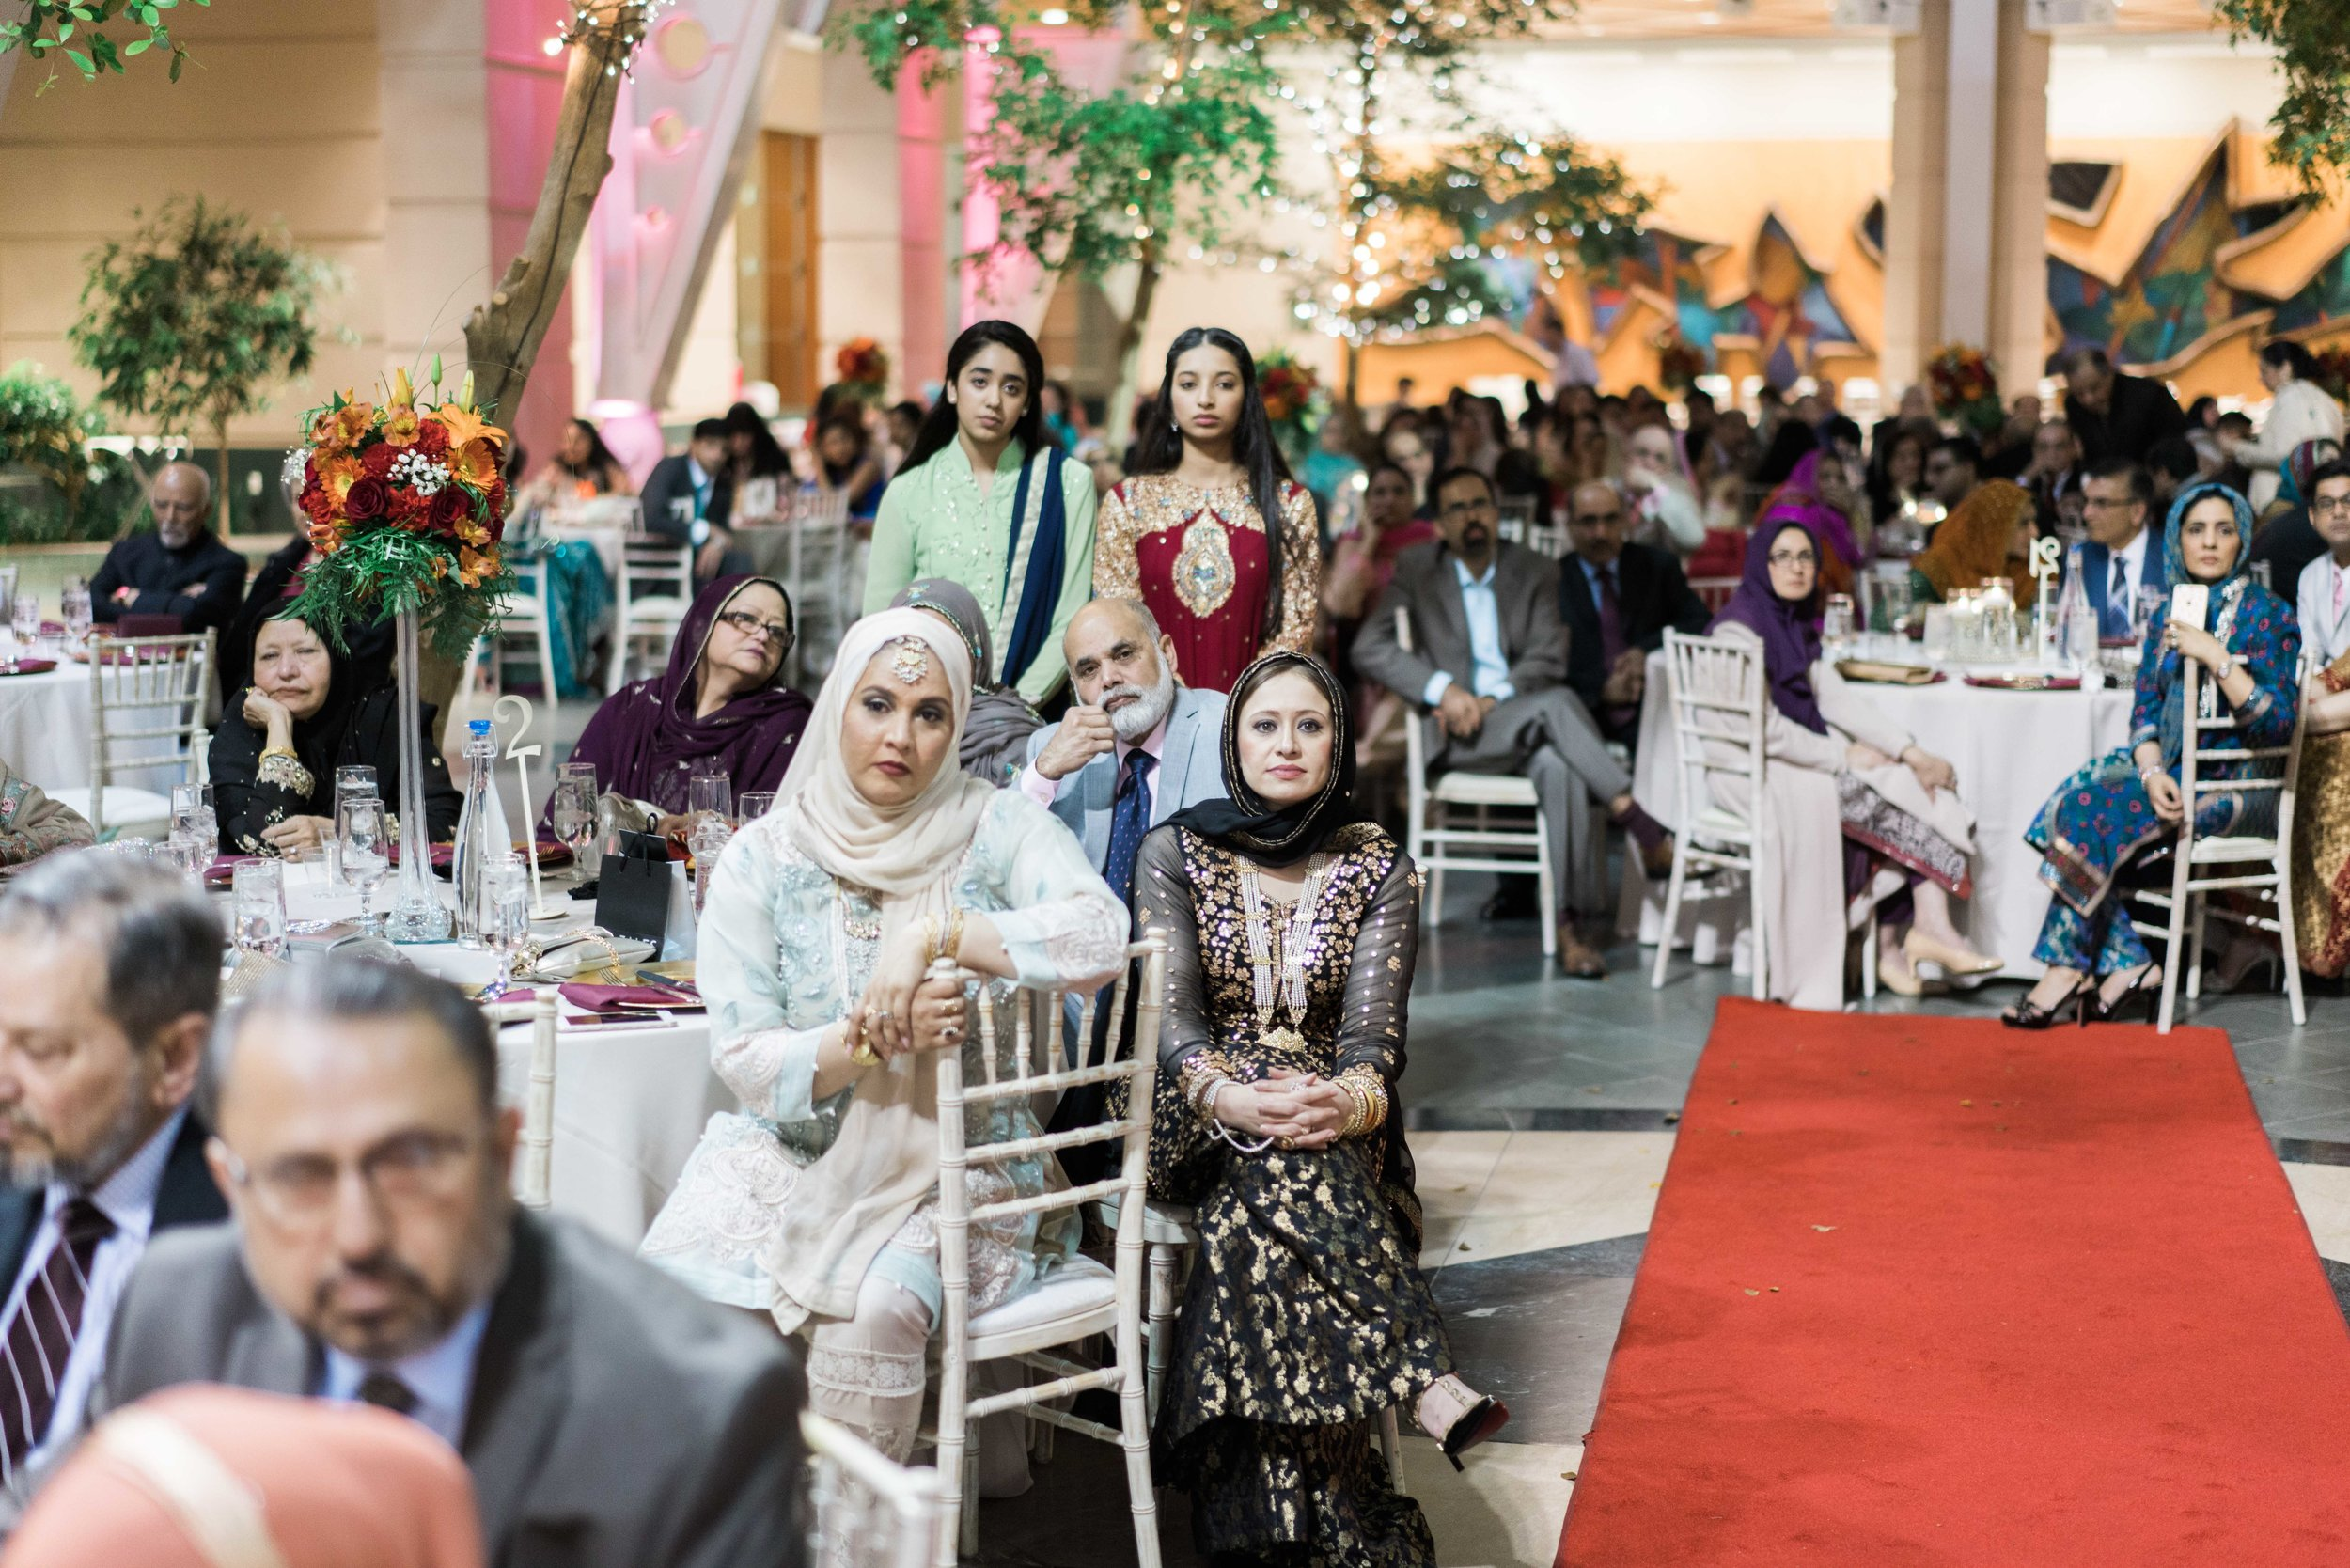 Nadia and Usman Blog Weddig Photography at Wintergarden by Monroe's in Rochester NY by Stefan Ludwig Photography-60.jpg